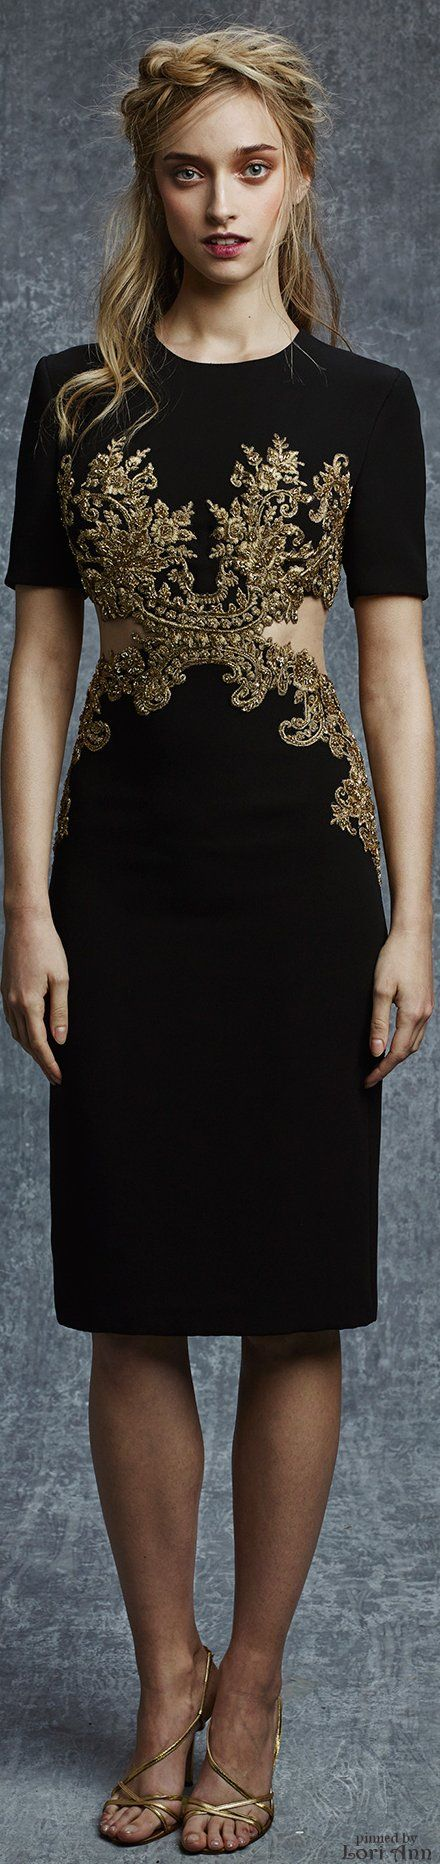 Reem Acra Pre-Fall 2015. Awesome dress, even if the model does look like she's straight off the set of the Walking Dead.